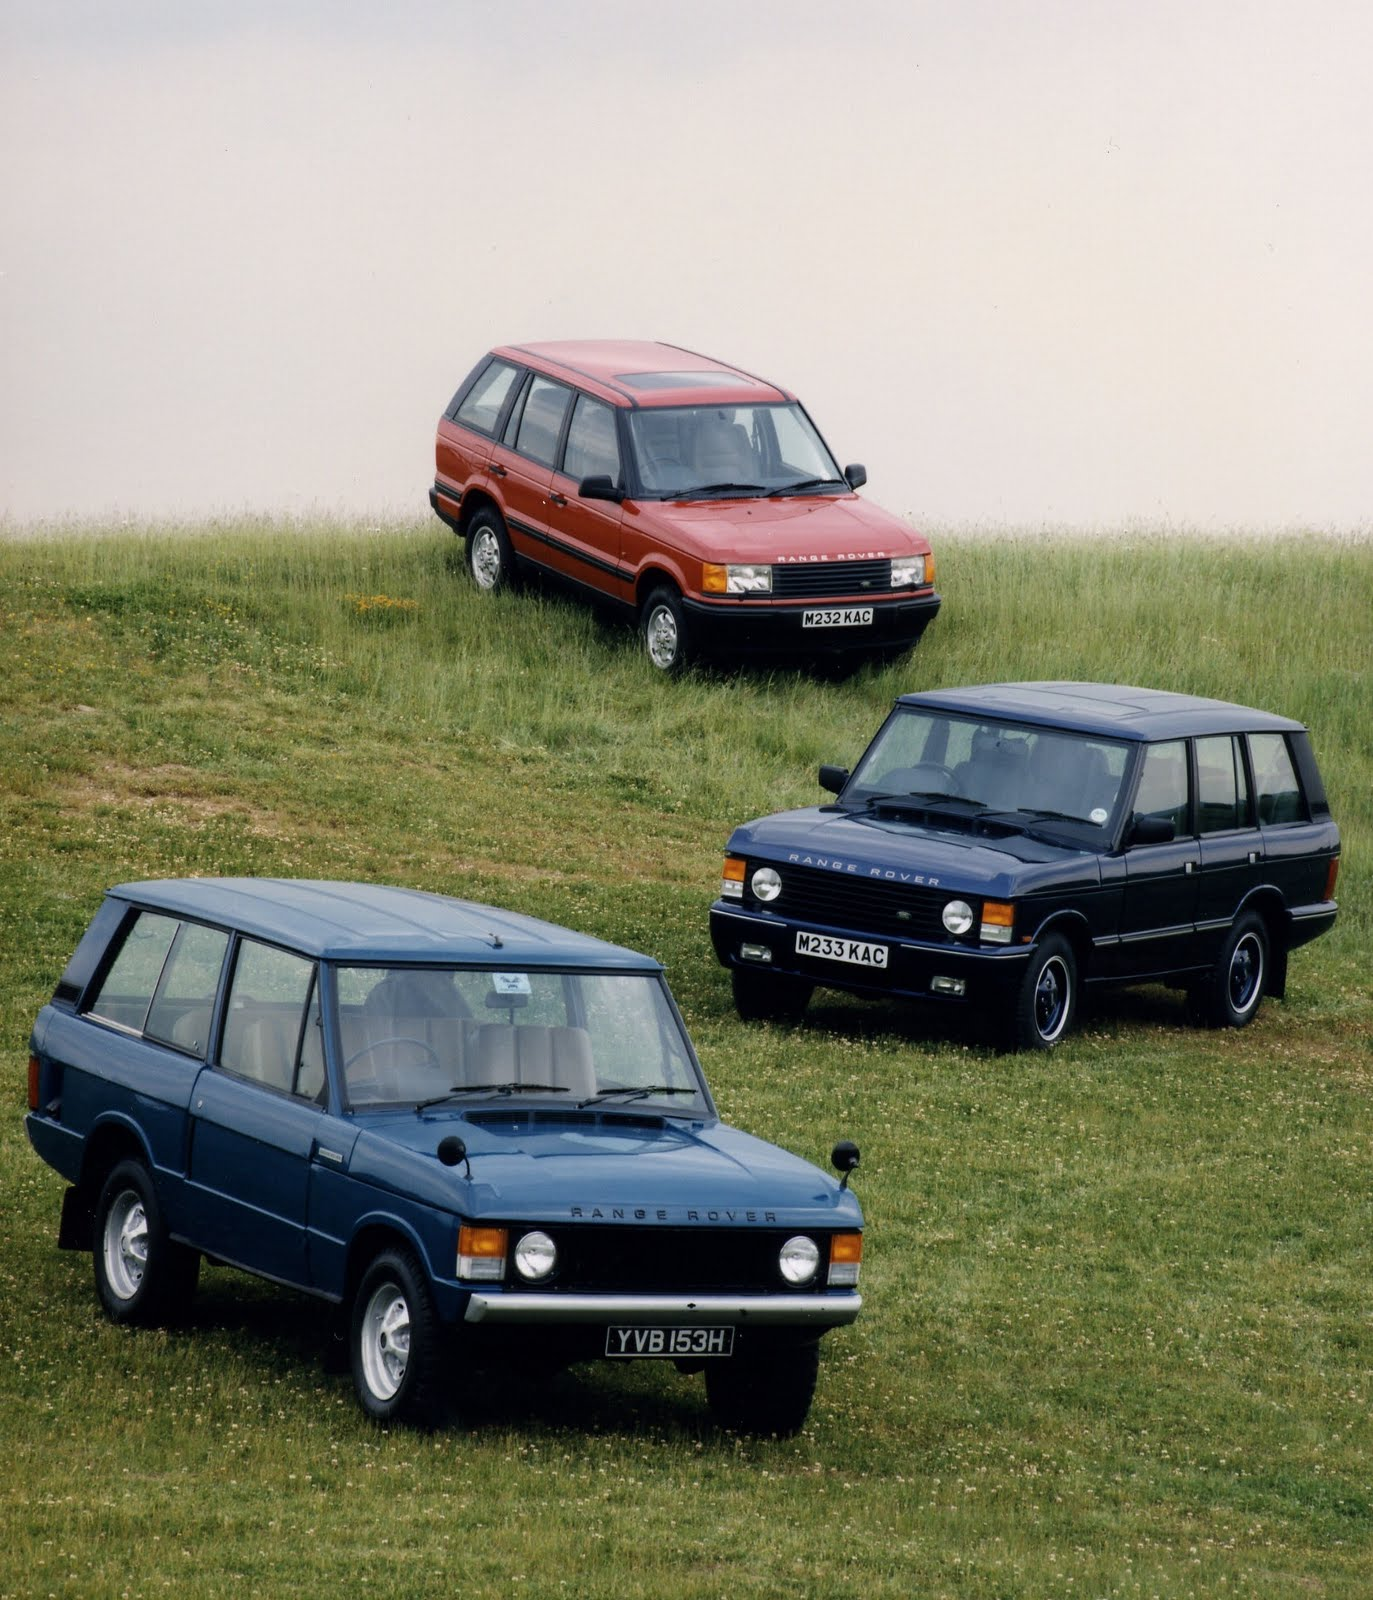 VIDEO 40 Years of the Range Rover in 1 40 Minutes